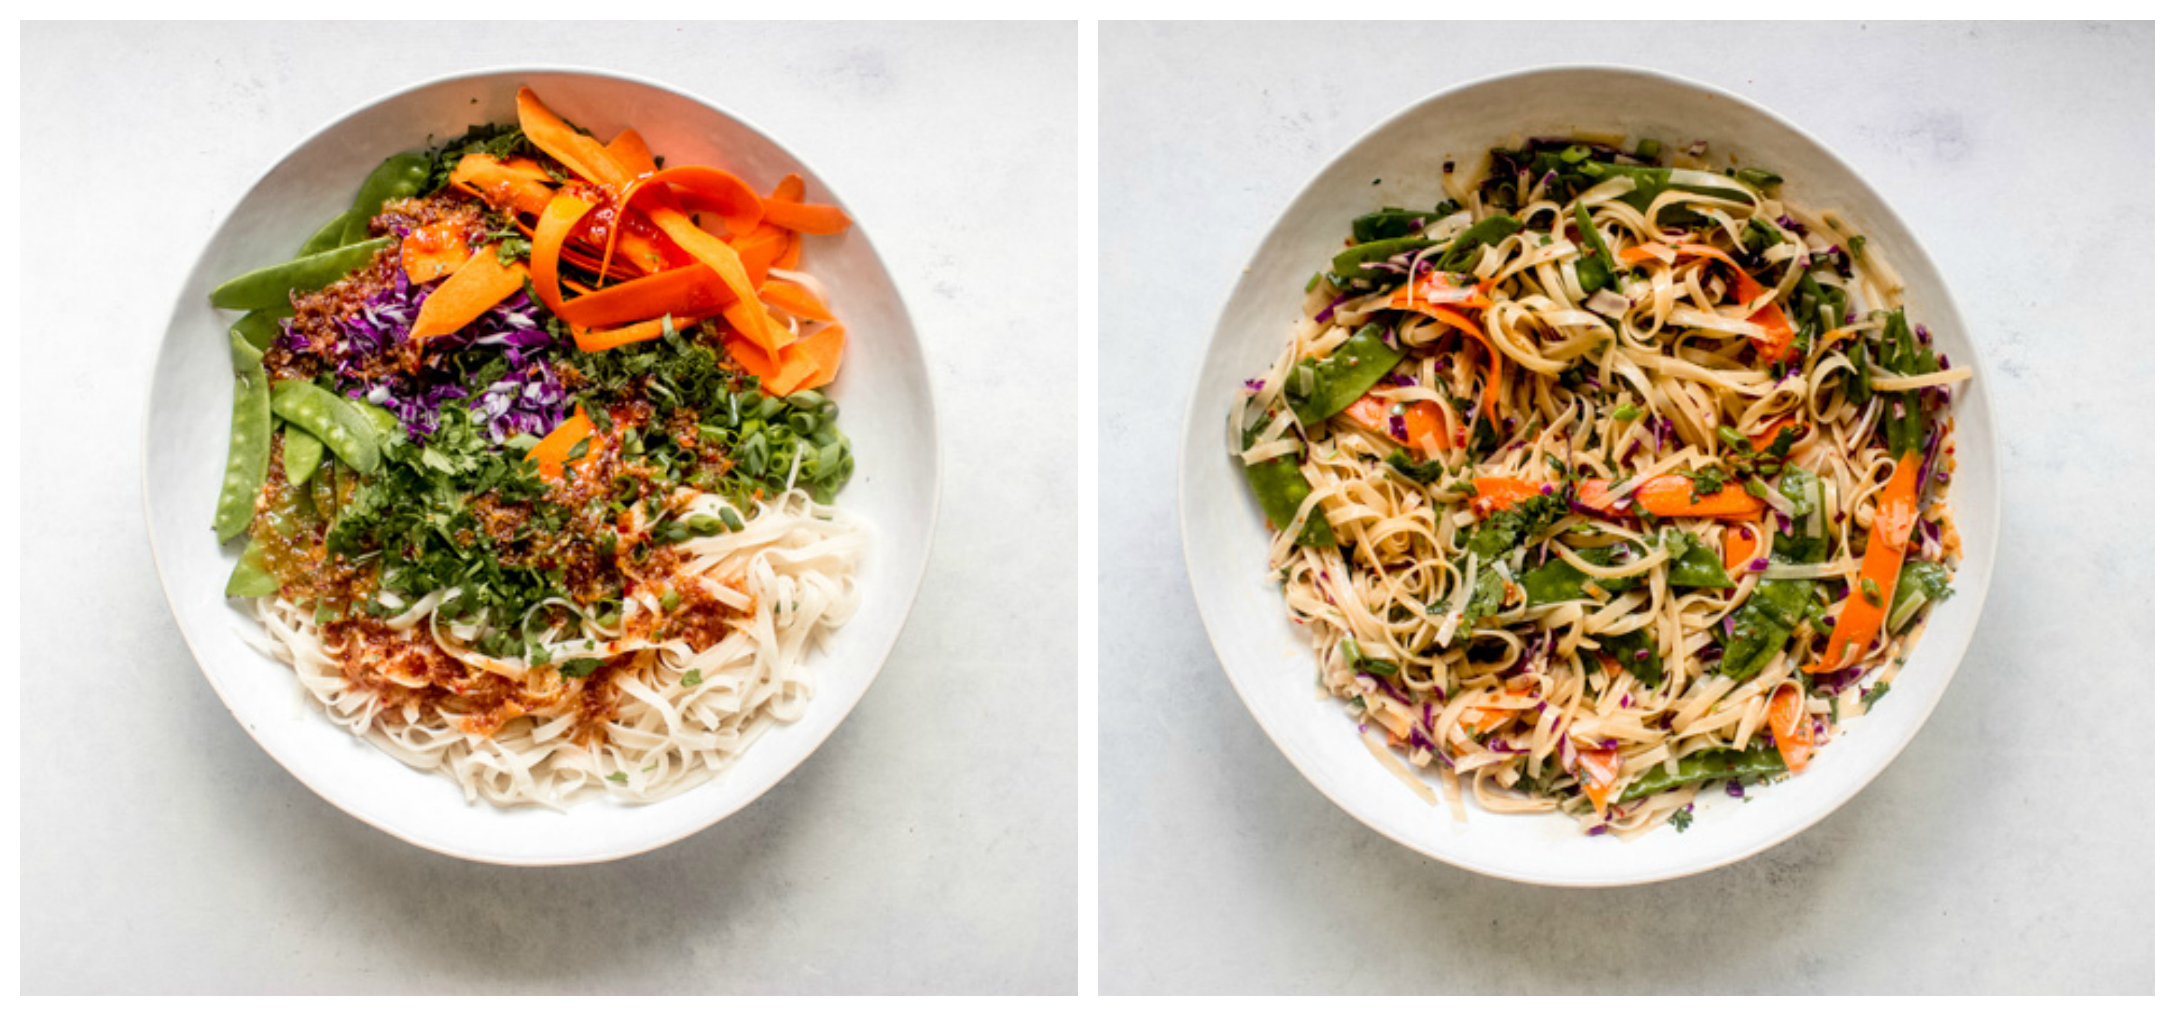 brown rice noodle salad with vegetables